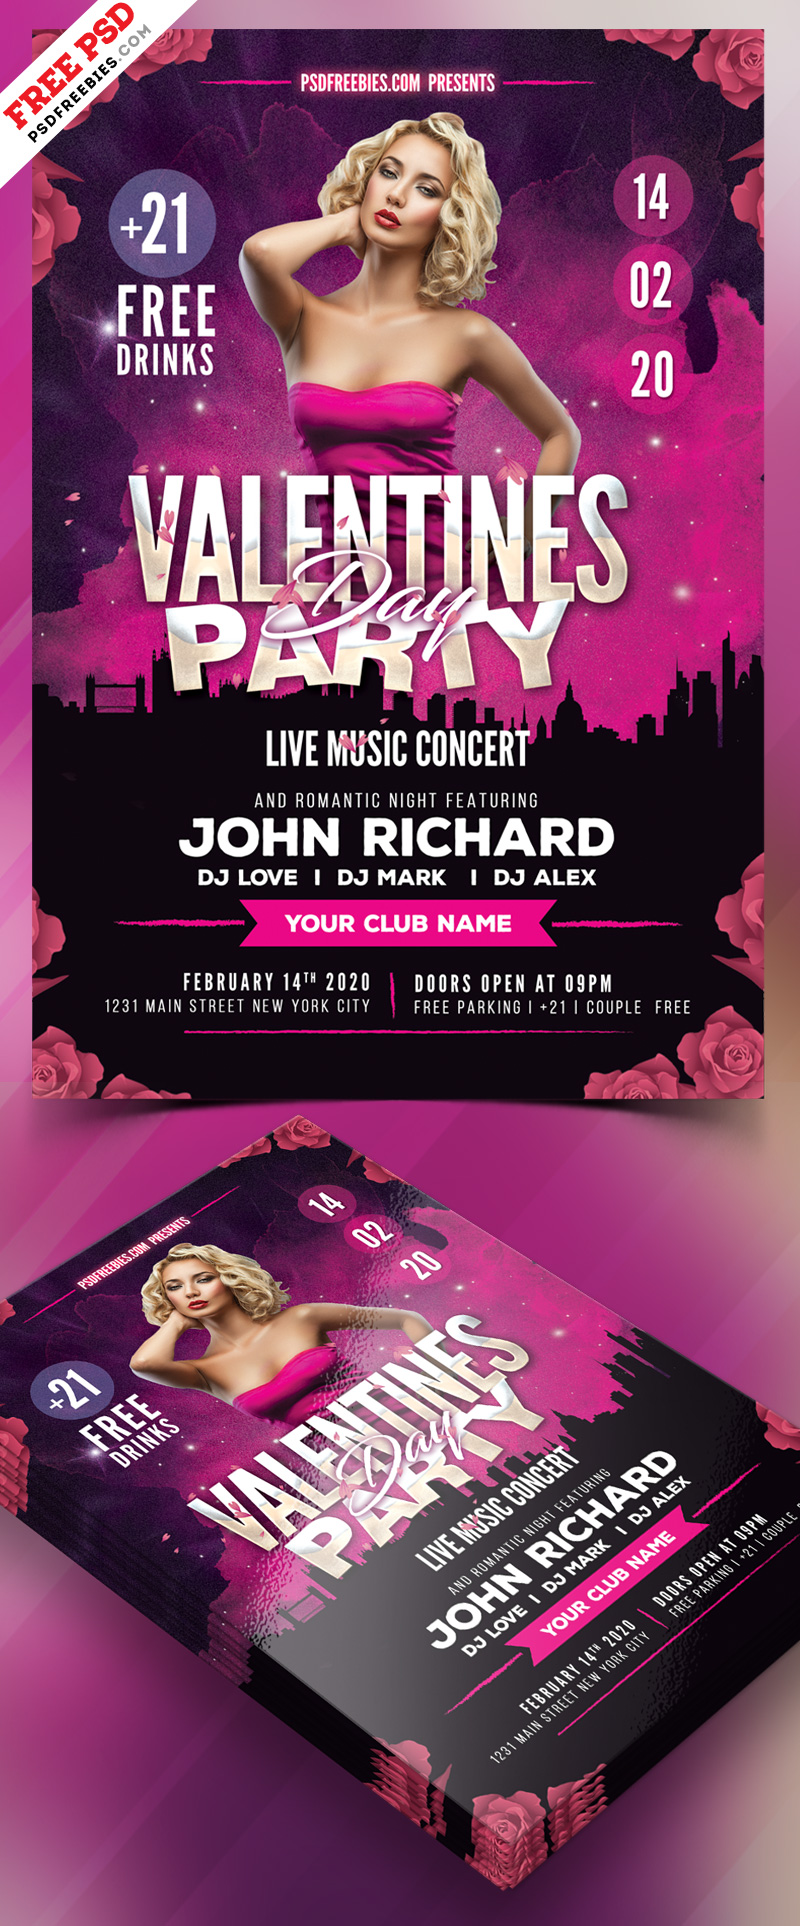 Valentines Day Party Flyer PSD Freebie